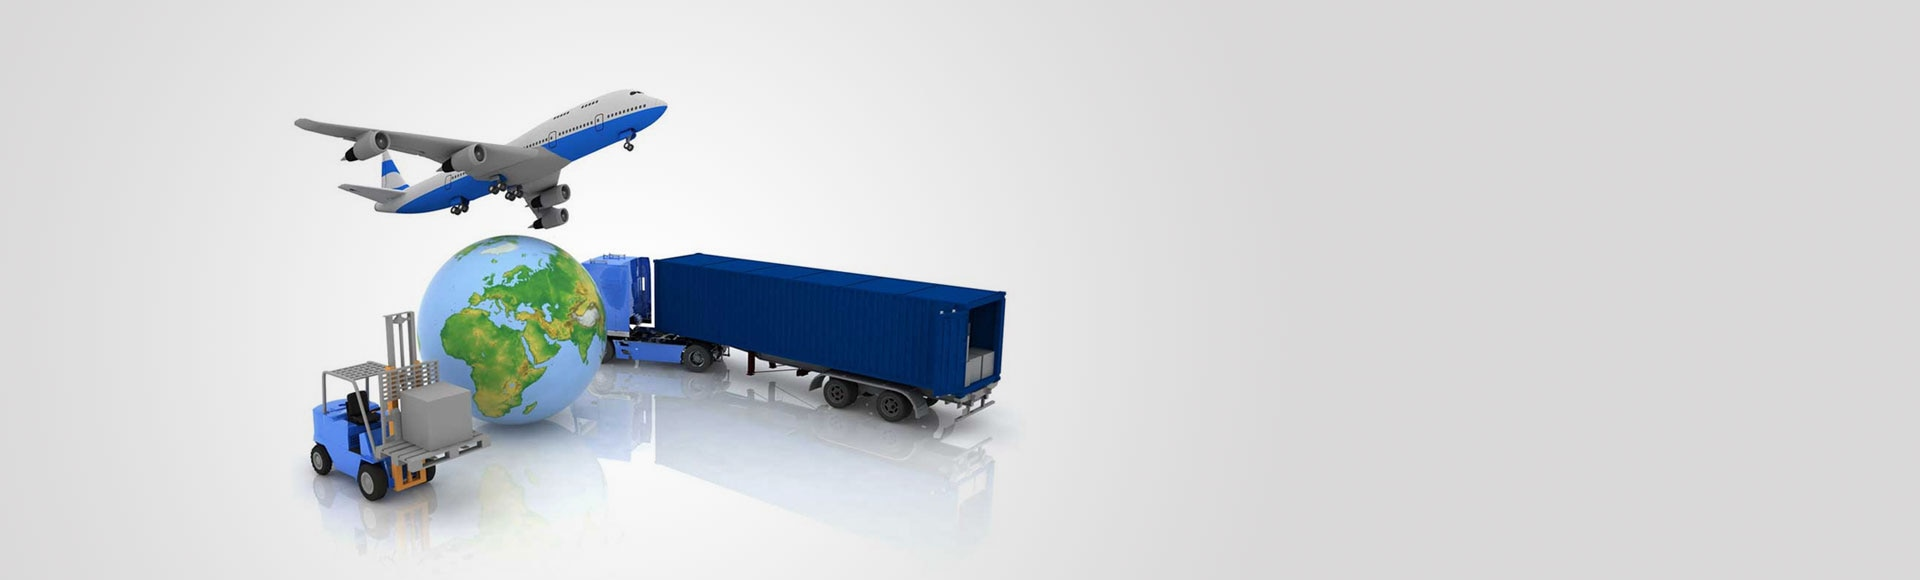 Aadhunic Cargo Carriers